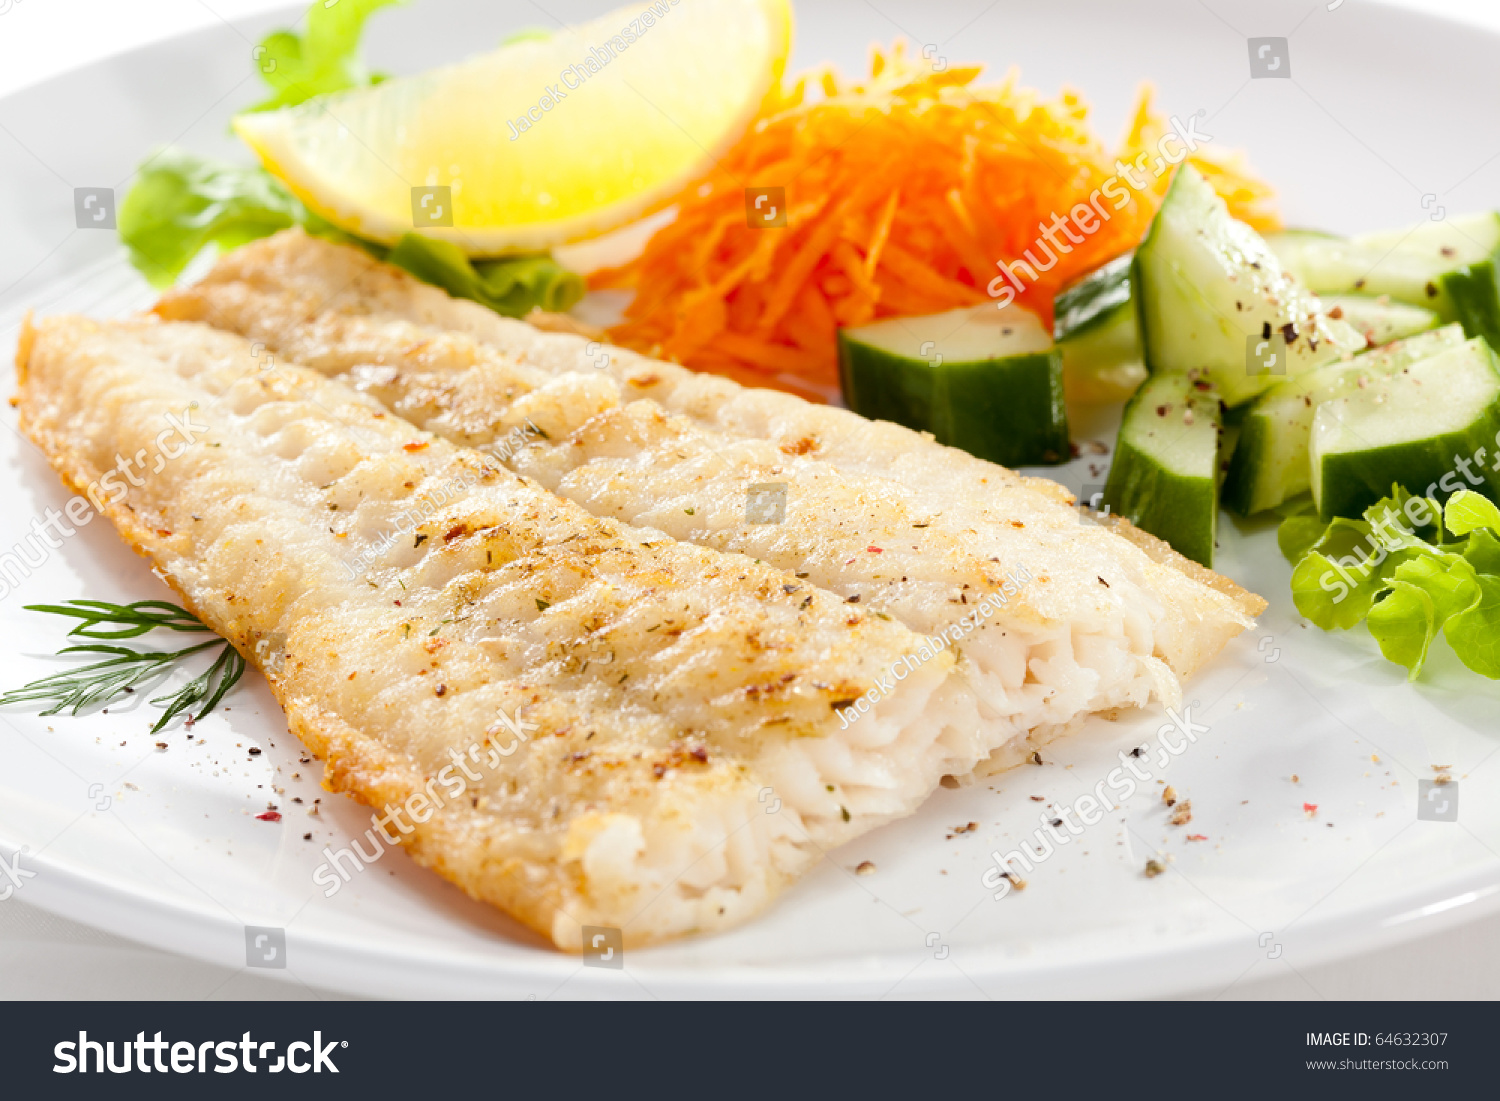 Fish dish fried fish fillet vegetables stock photo for What vegetables go with fish